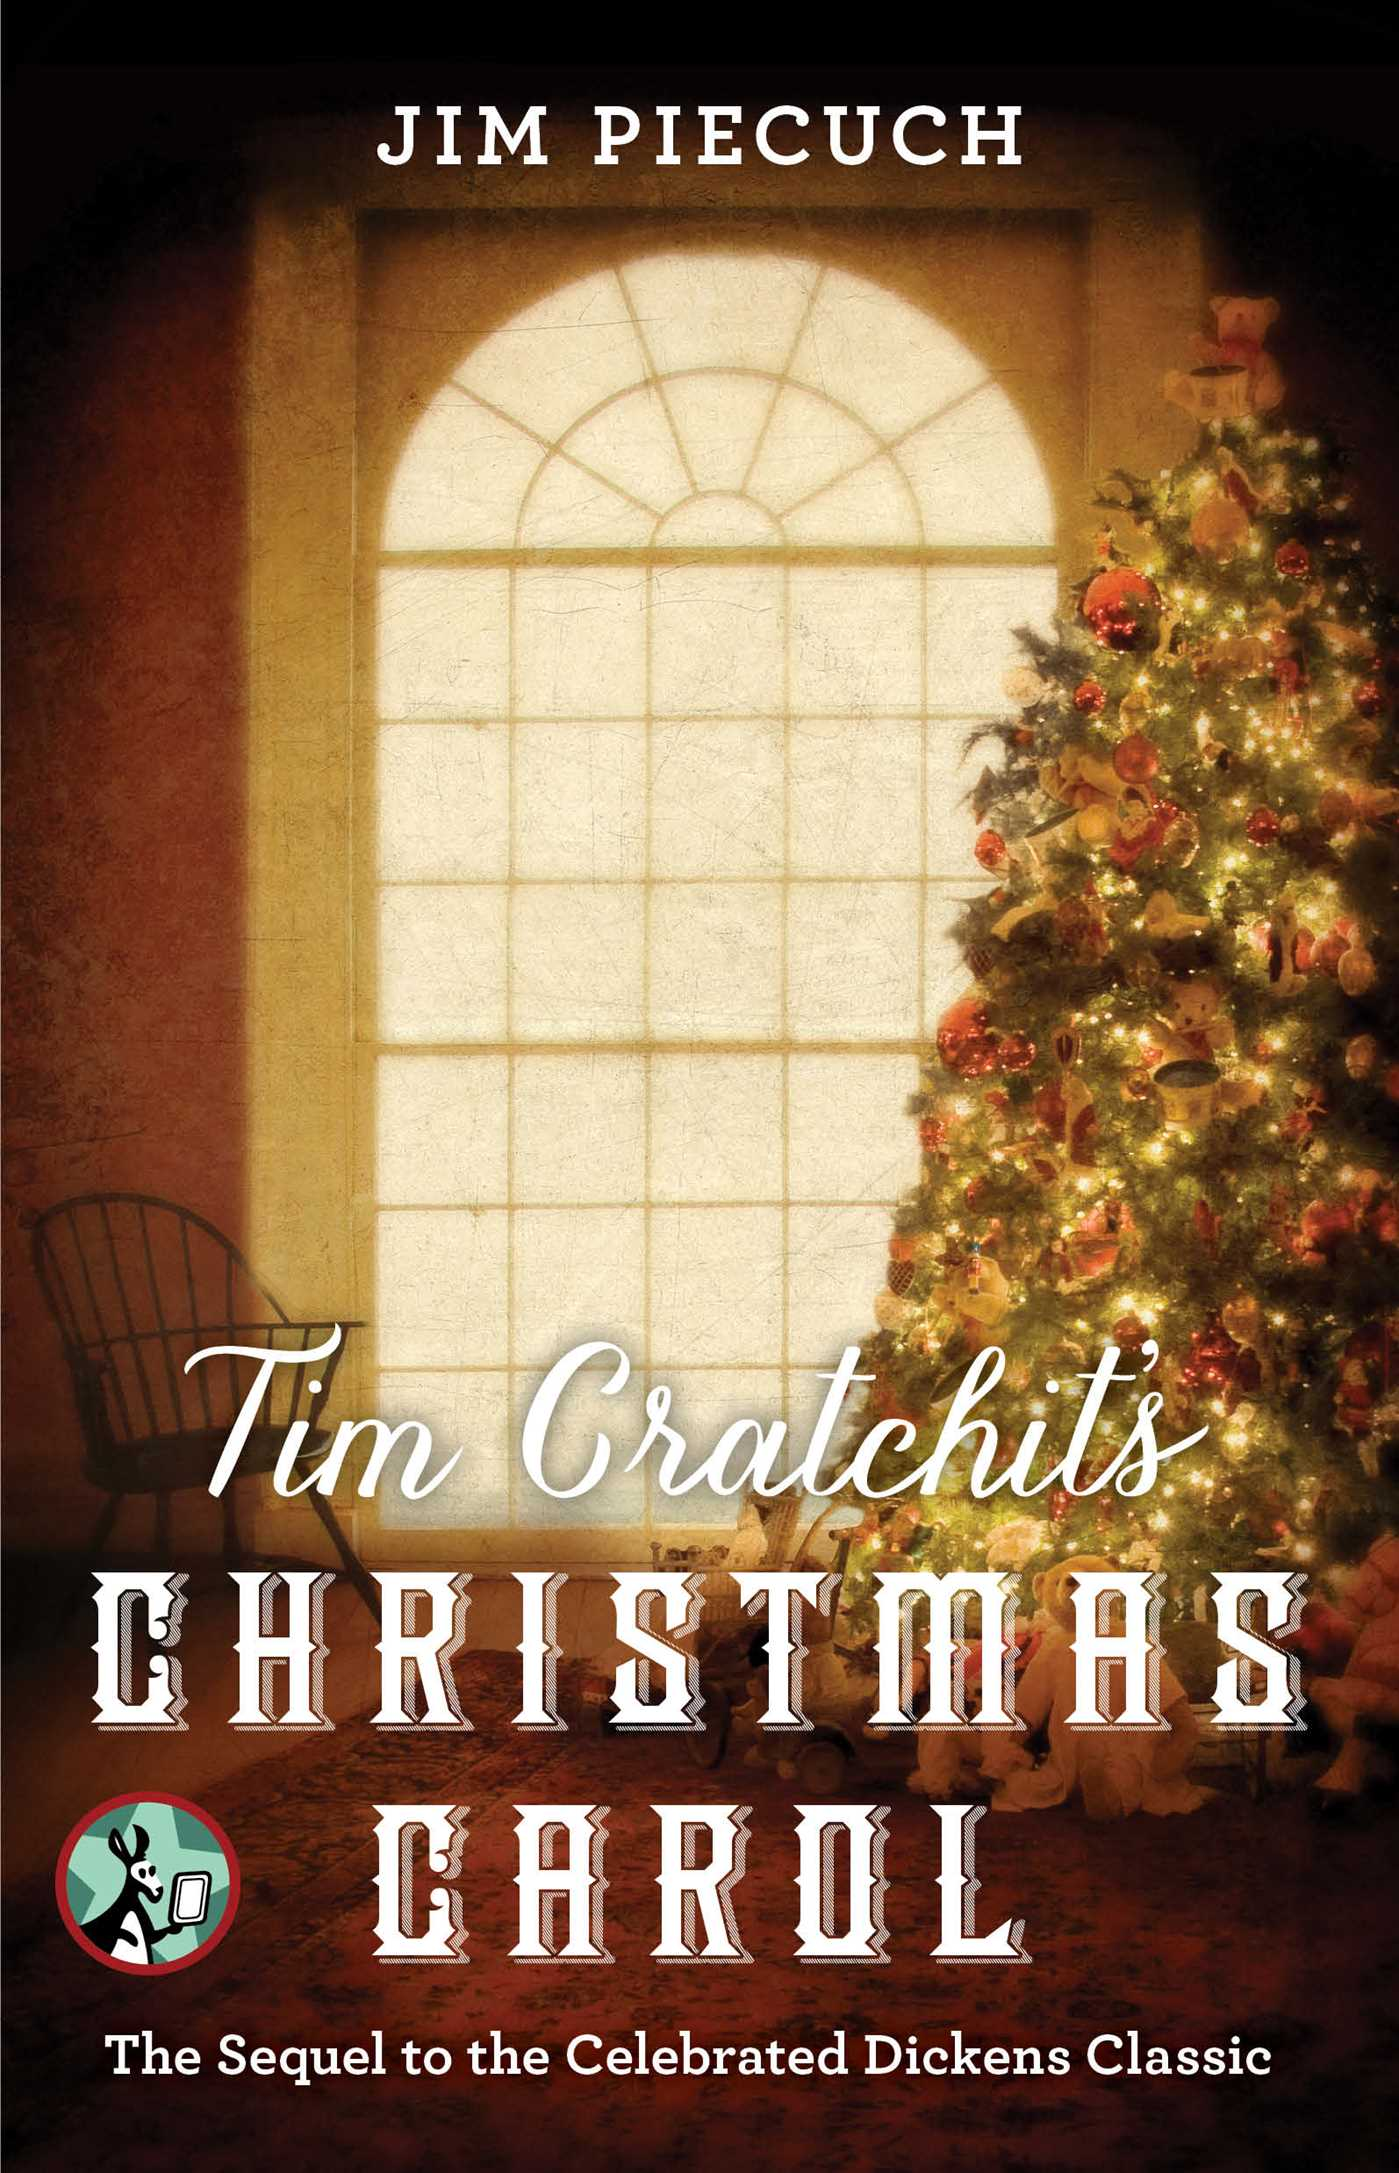 Tim cratchits christmas carol 9781476766171 hr